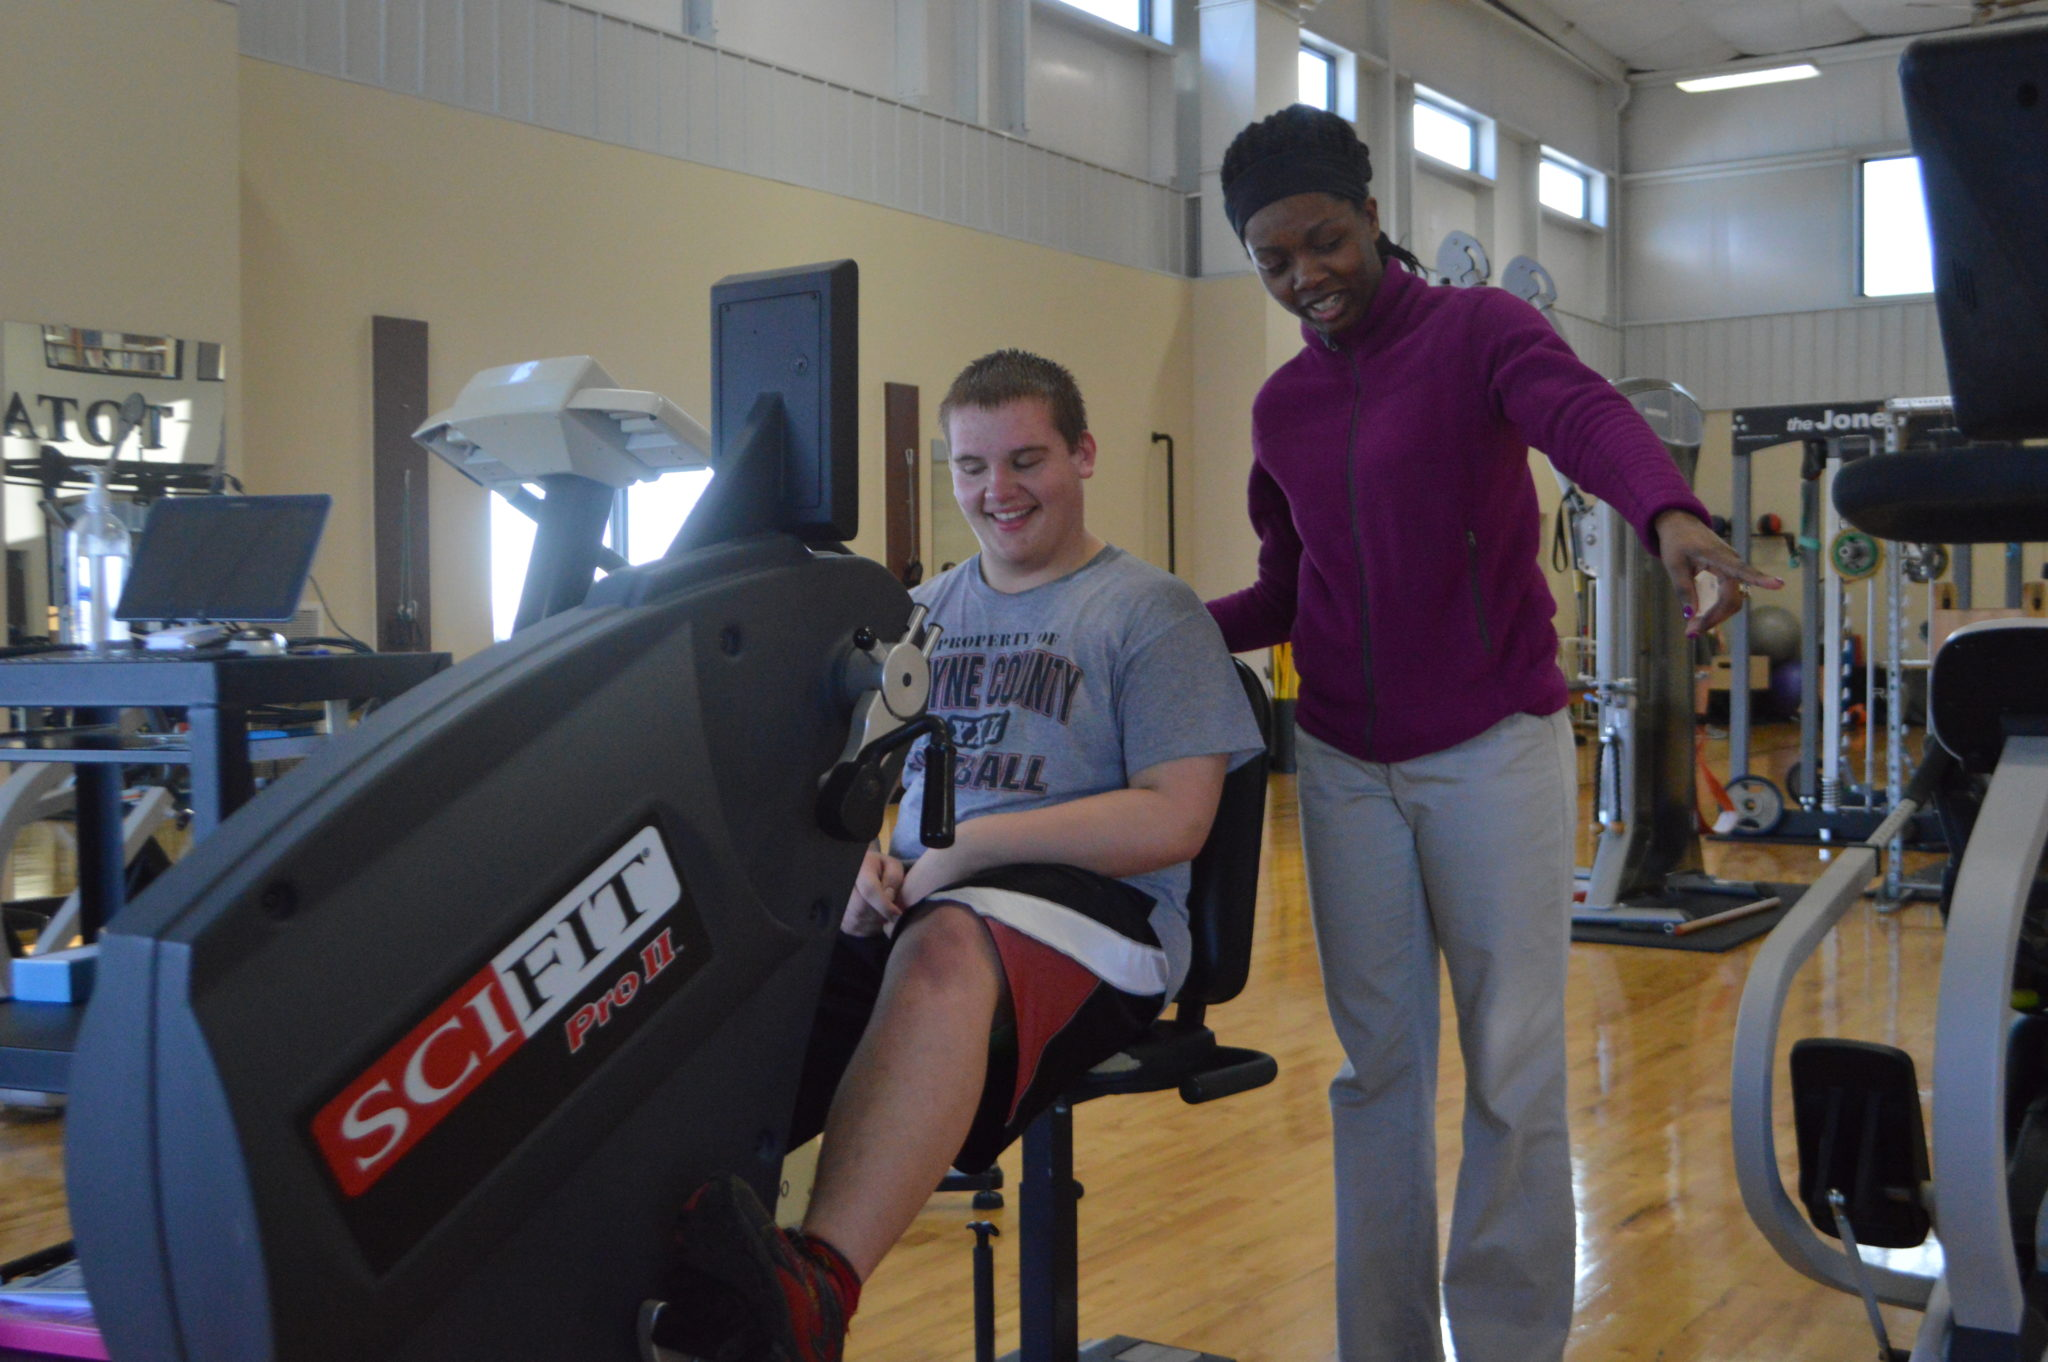 Total Rehab Center Physical Therapy